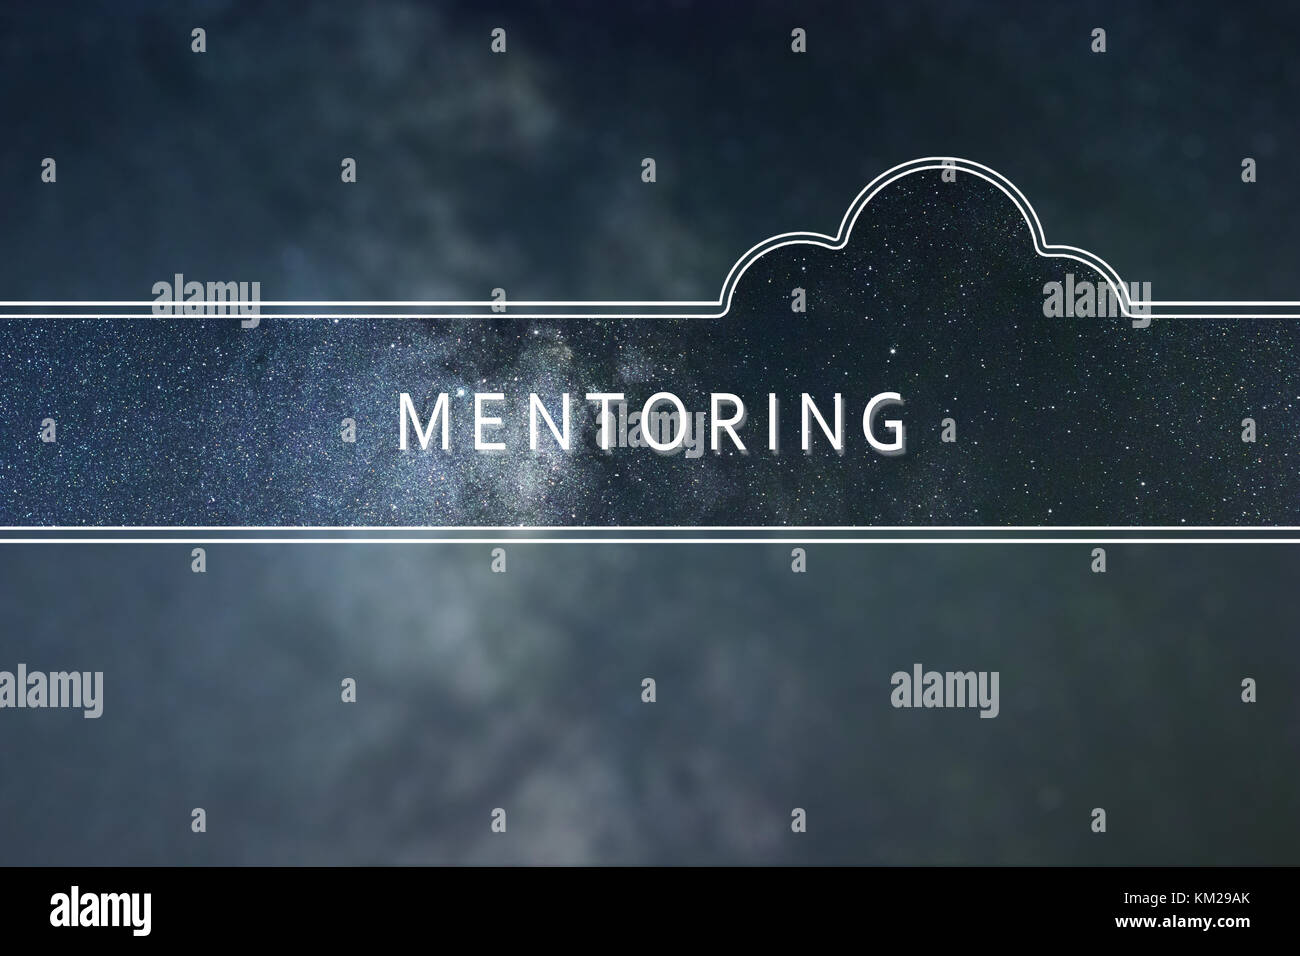 MENTORING word cloud Concept. Space background. - Stock Image